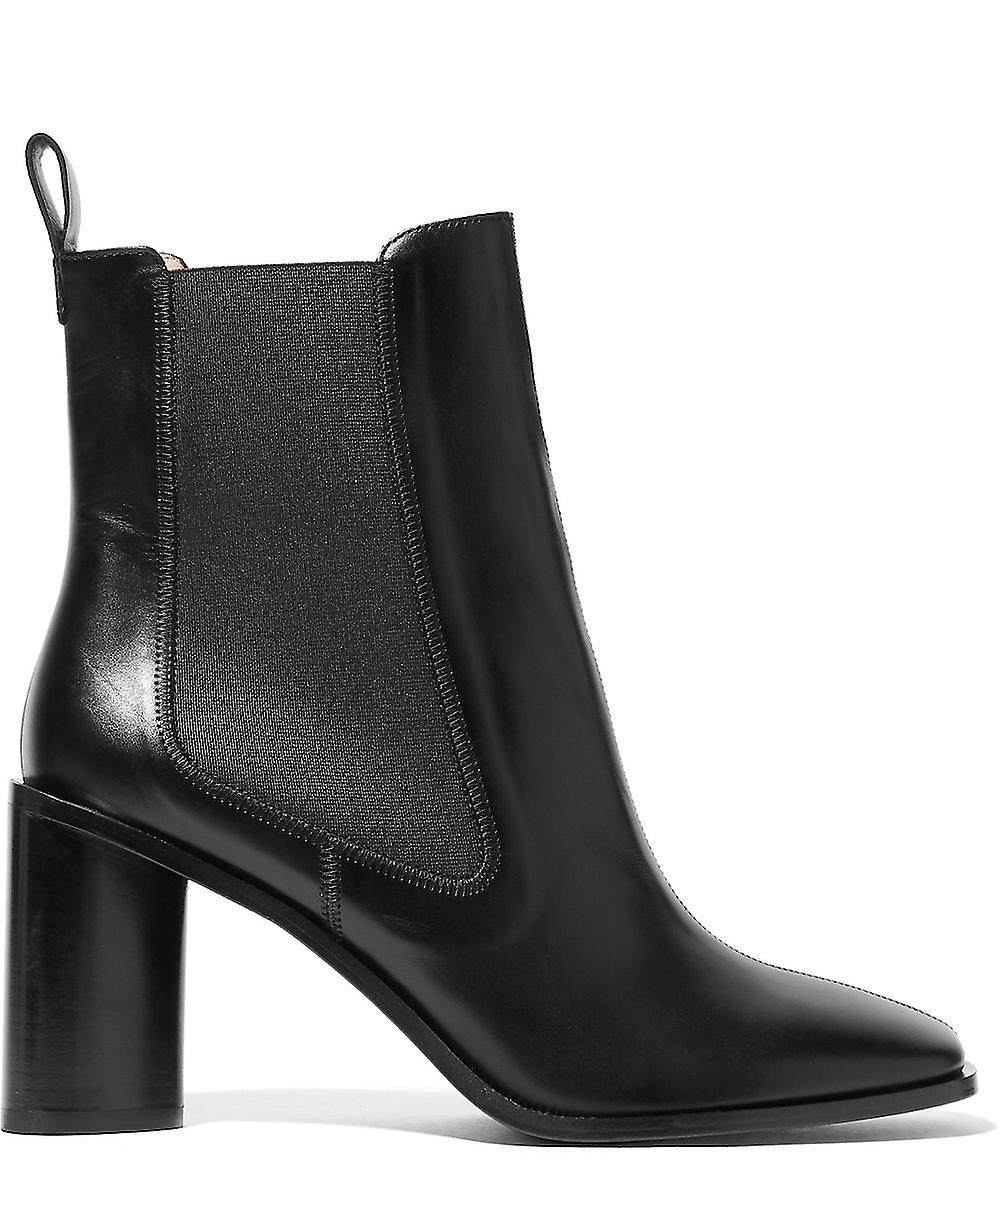 Bethany Ankle Boots